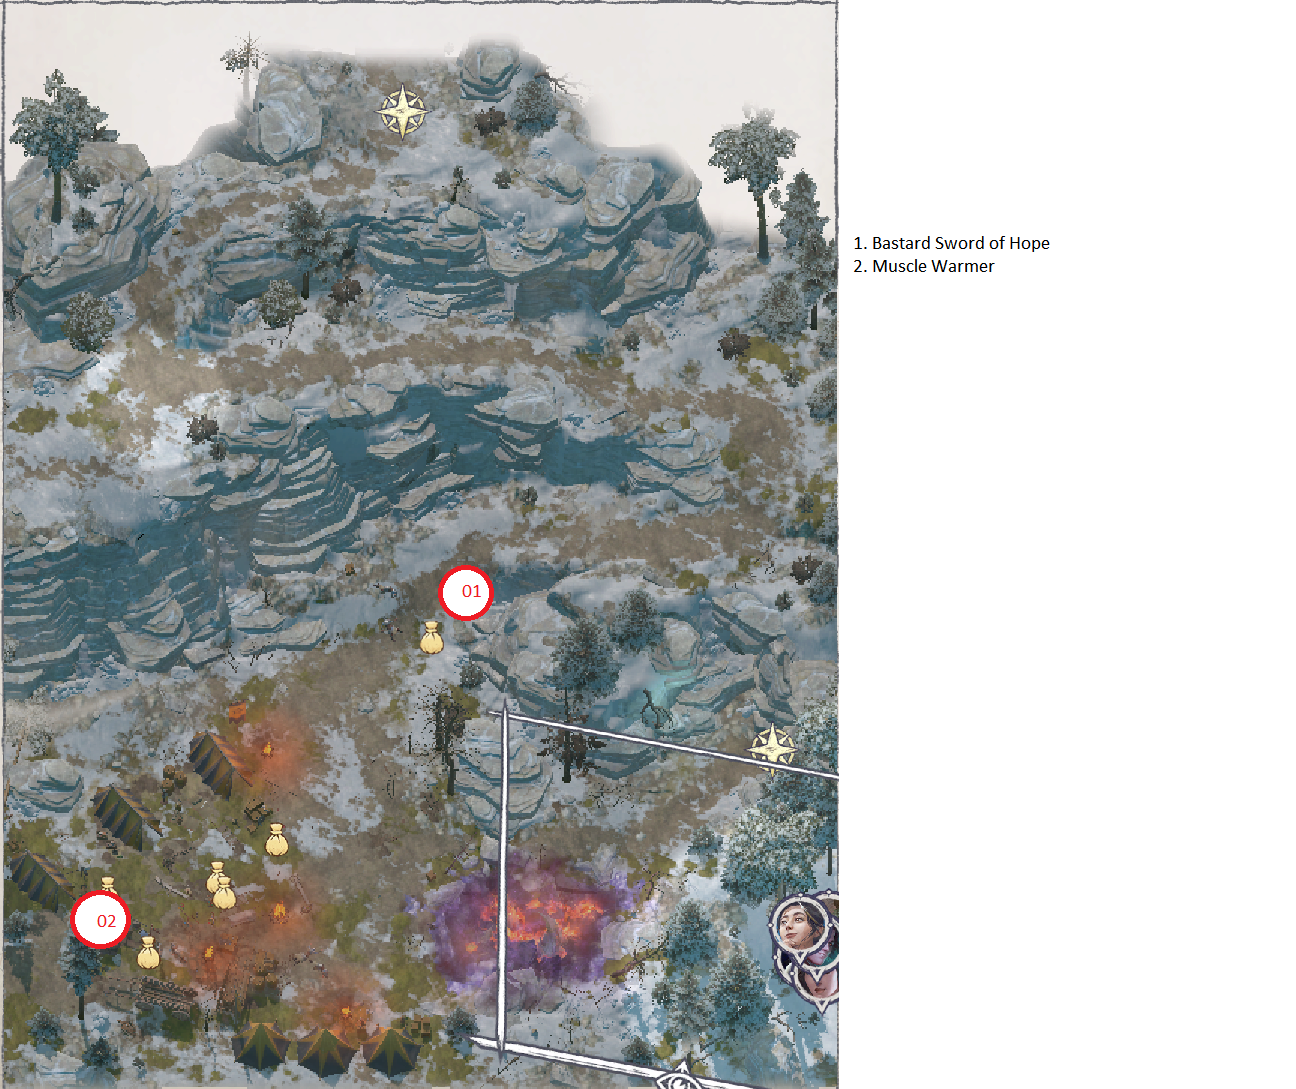 Pathfinder: Wrath of the Righteous All Items Location in Cave Map Guide - Ch. 2 Item Locations - 26057D0